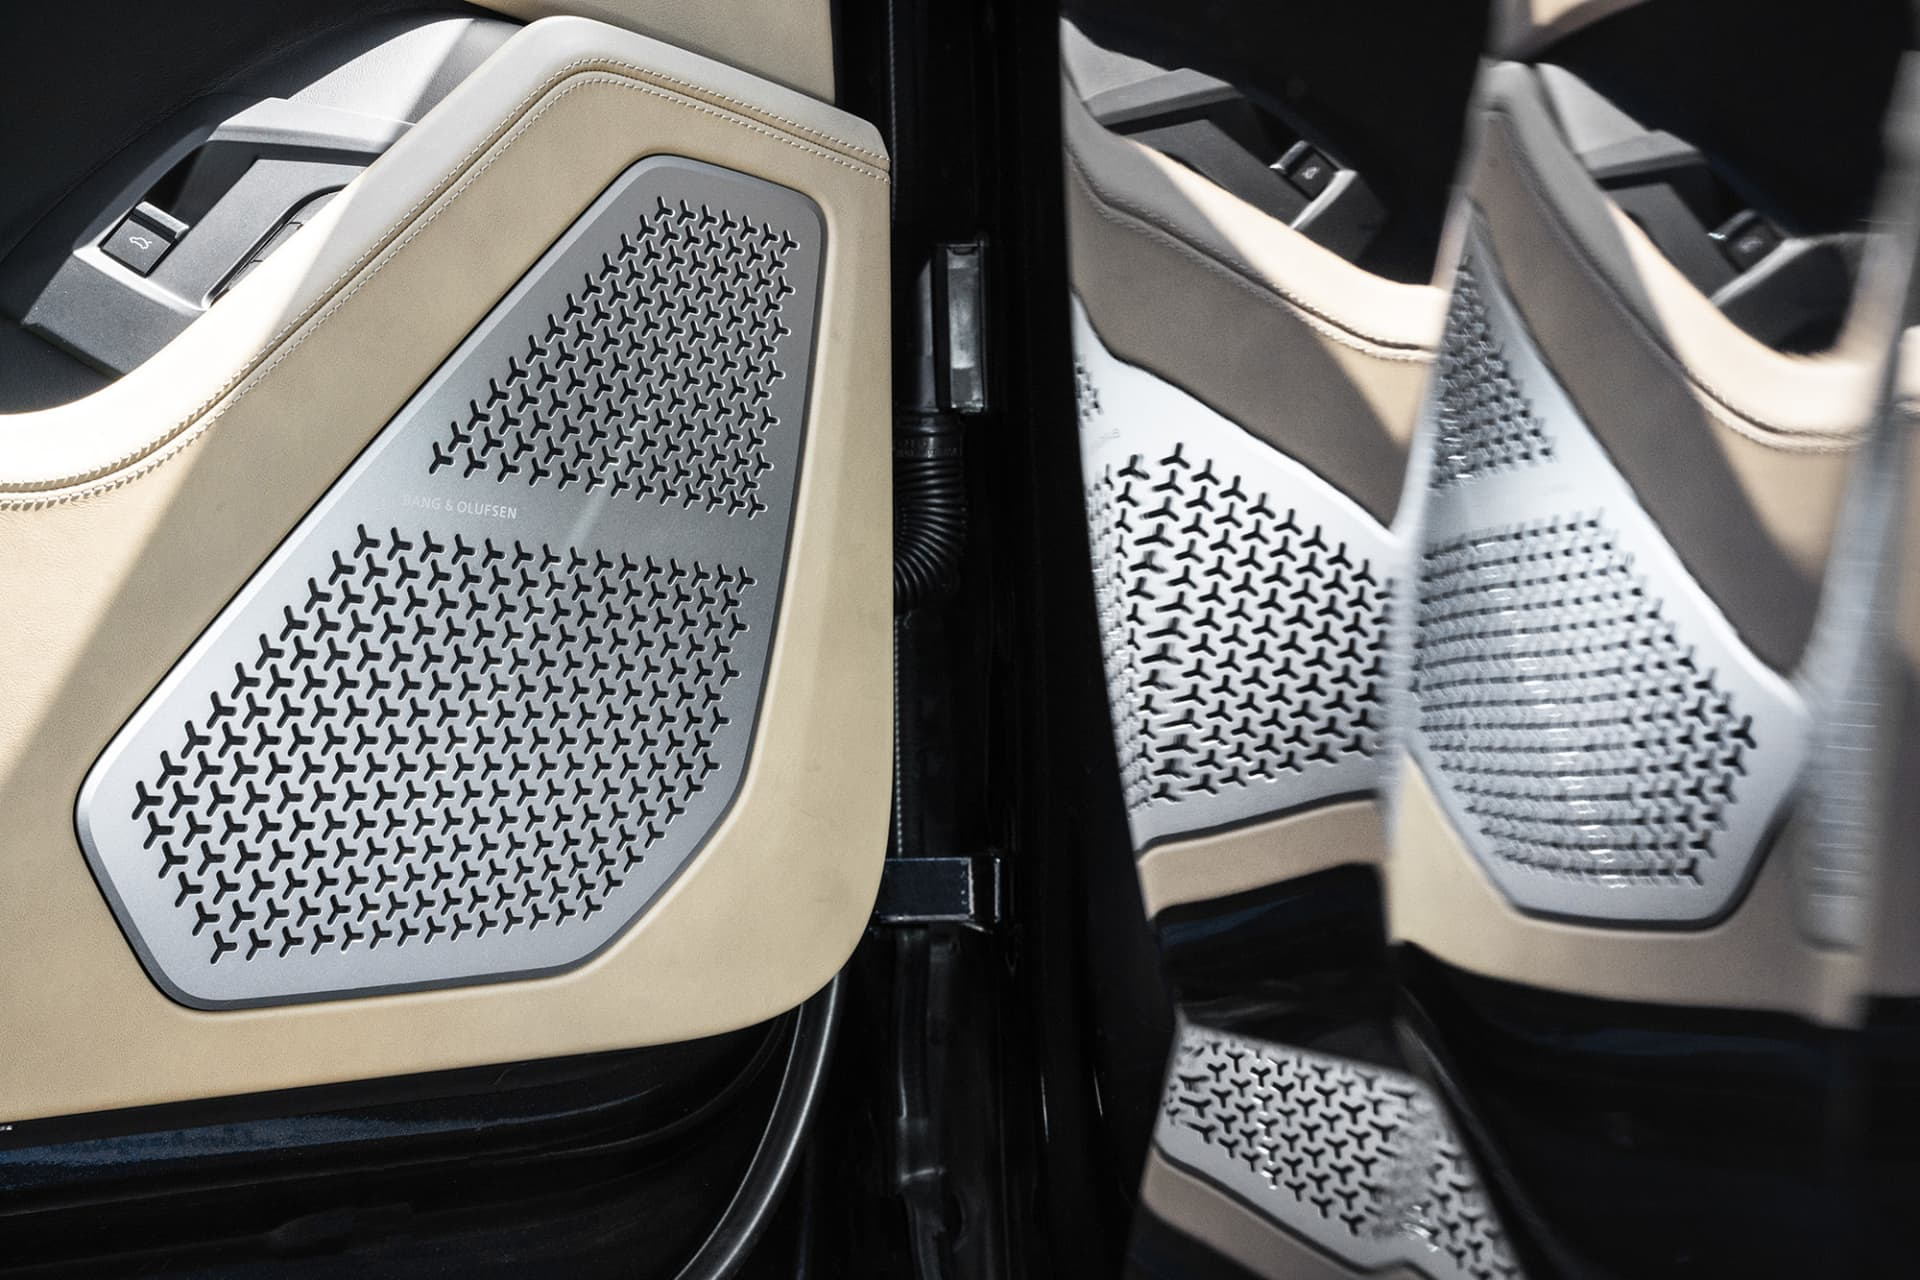 Lamborghini's designs have also been found in the speakers from Bang & Olufsen.